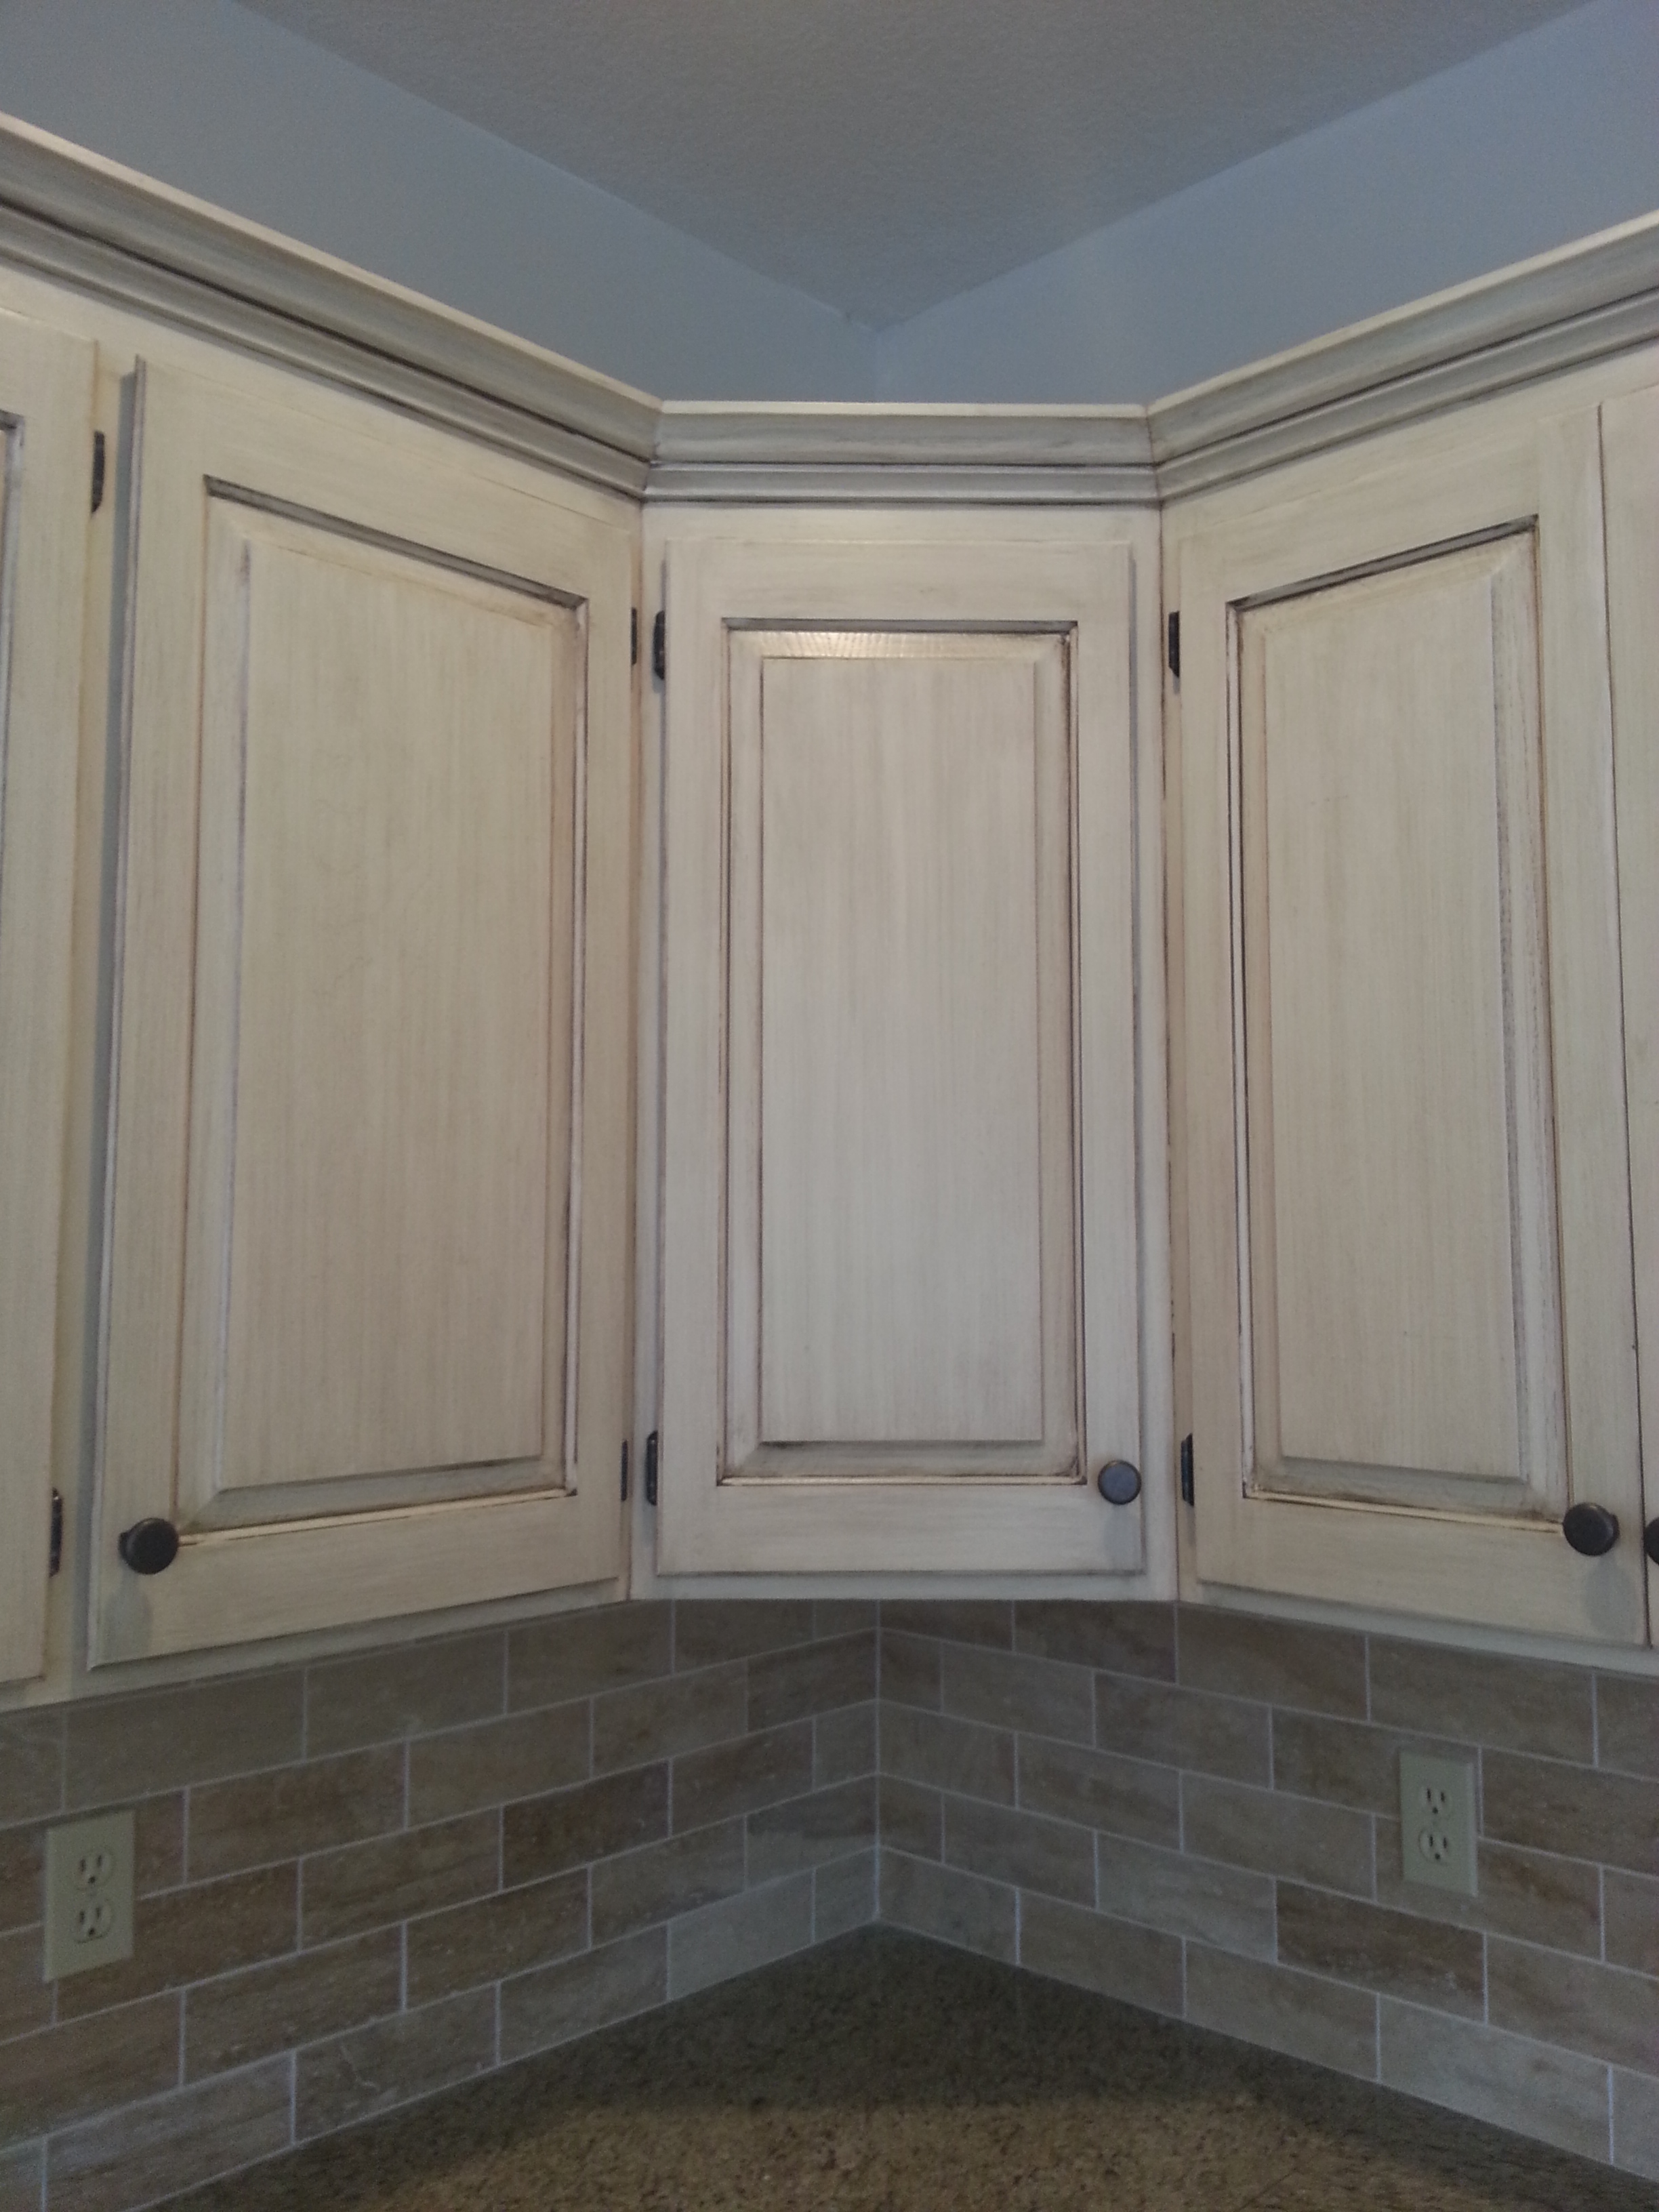 restaining-kitchen-cabinets-gel-stain-photo-12